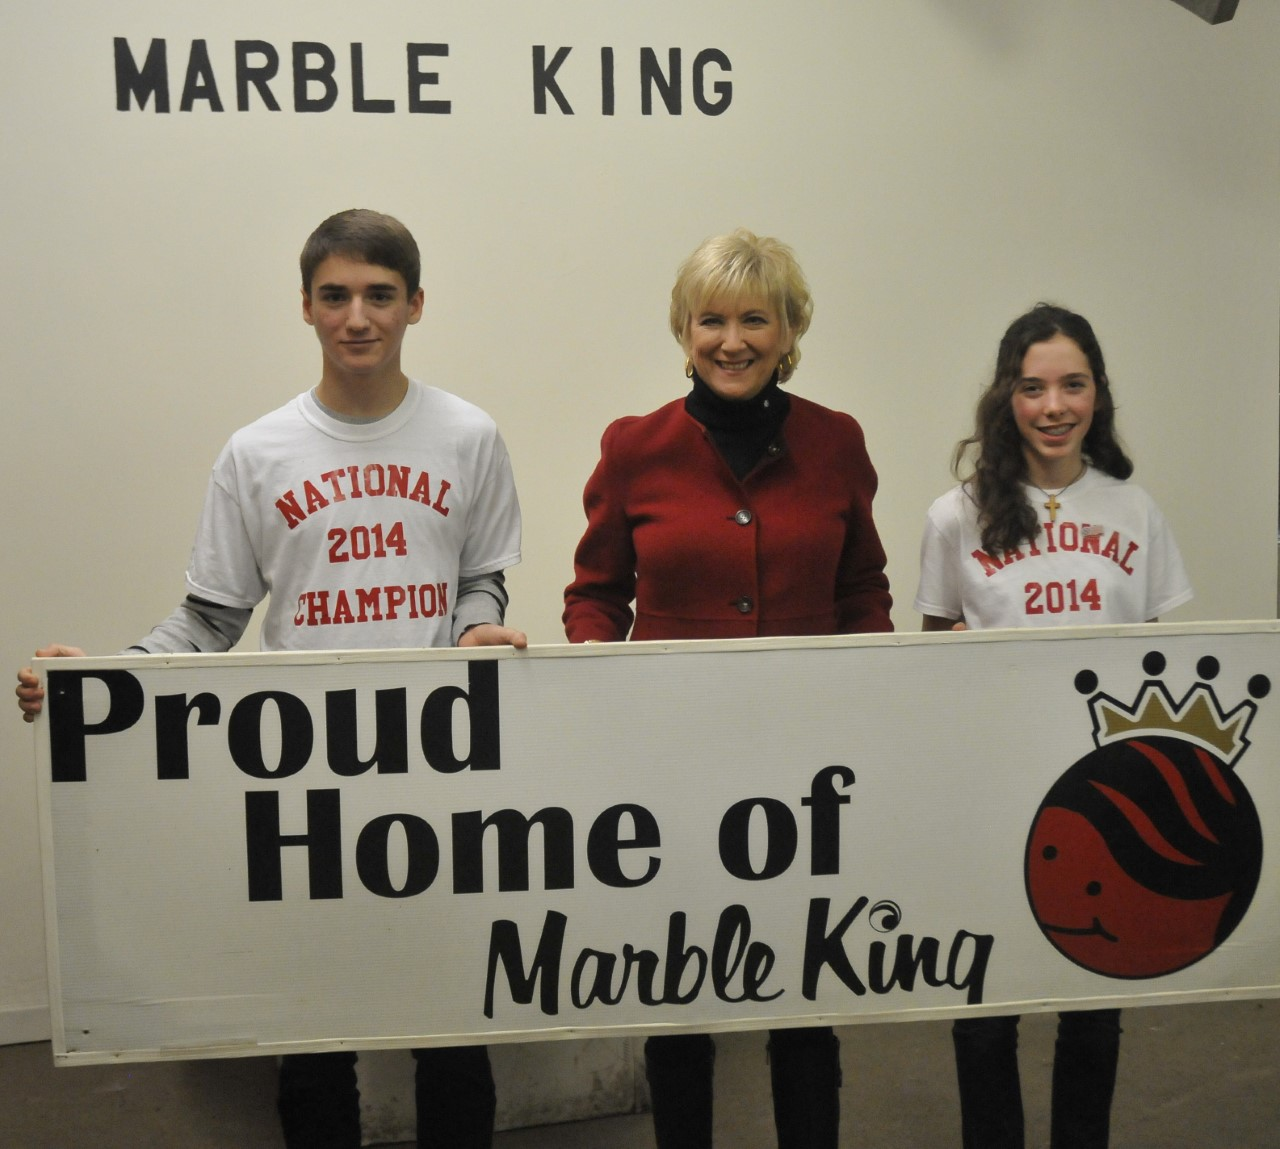 Marble King Champions